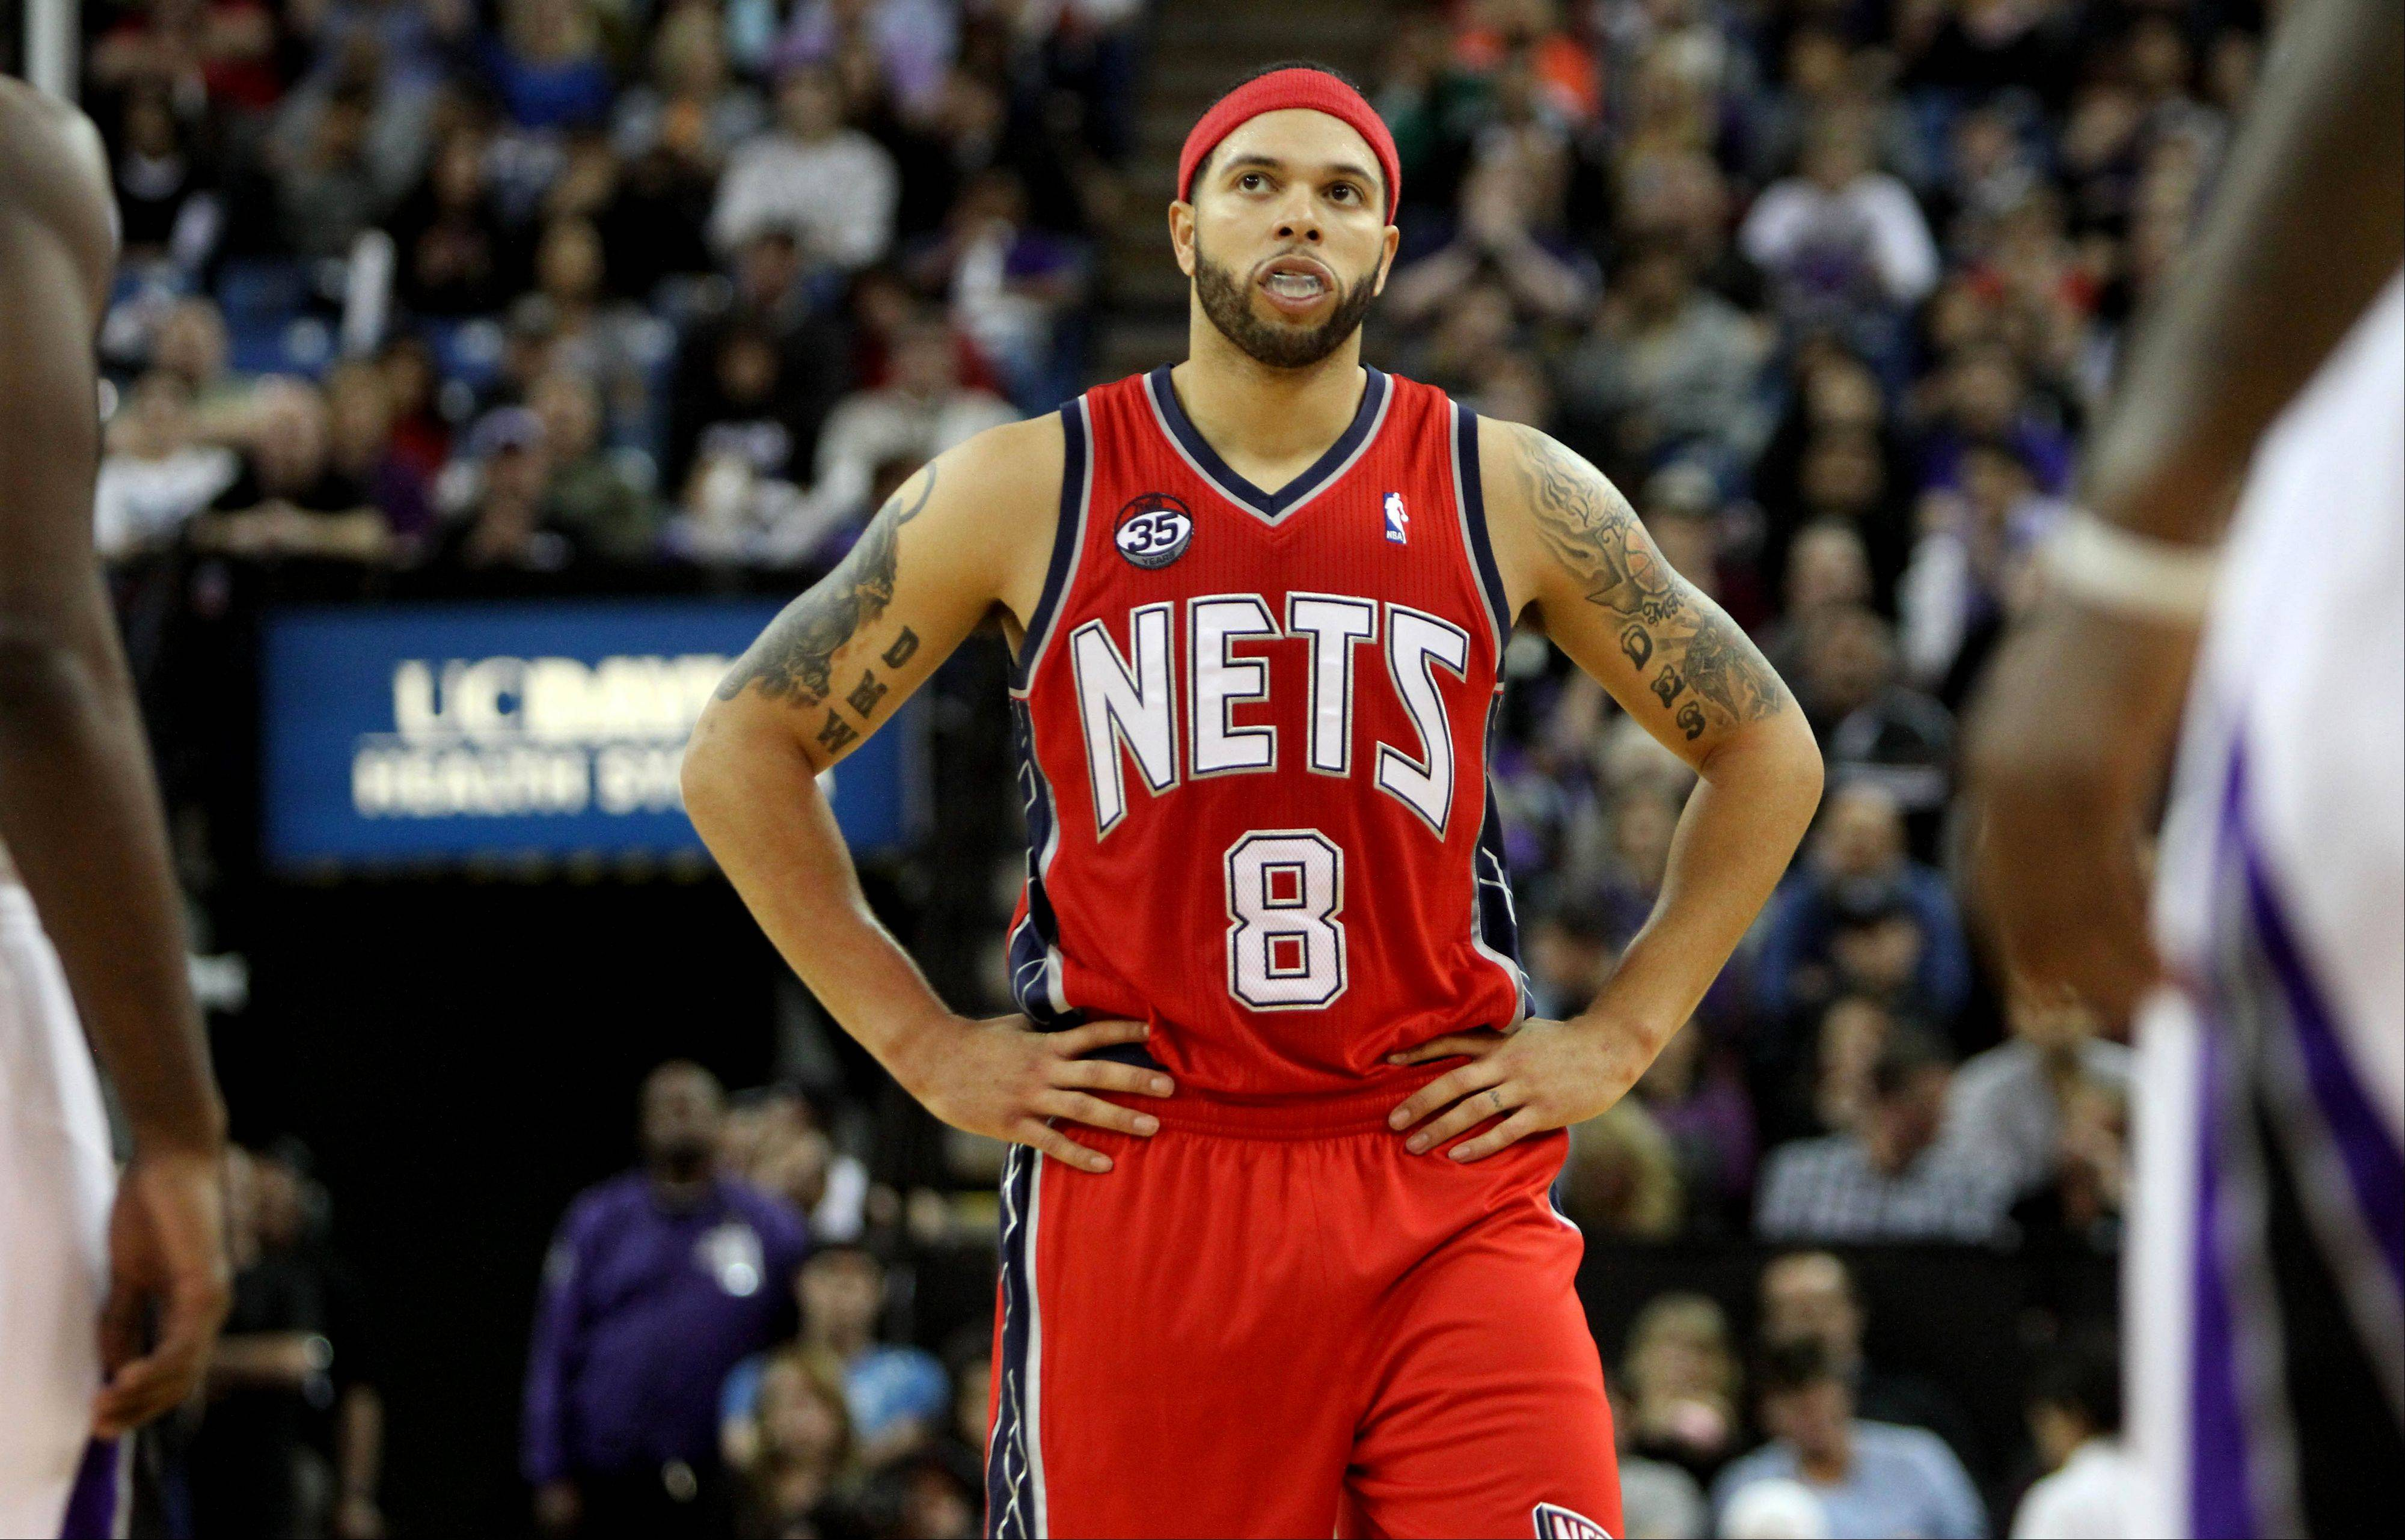 New Jersey Nets guard Deron Williams is seen during the second half of an NBA basketball game against the Sacramento Kings in Sacramento, Calif., Saturday, March 31, 2012. The Nets won 111-99.